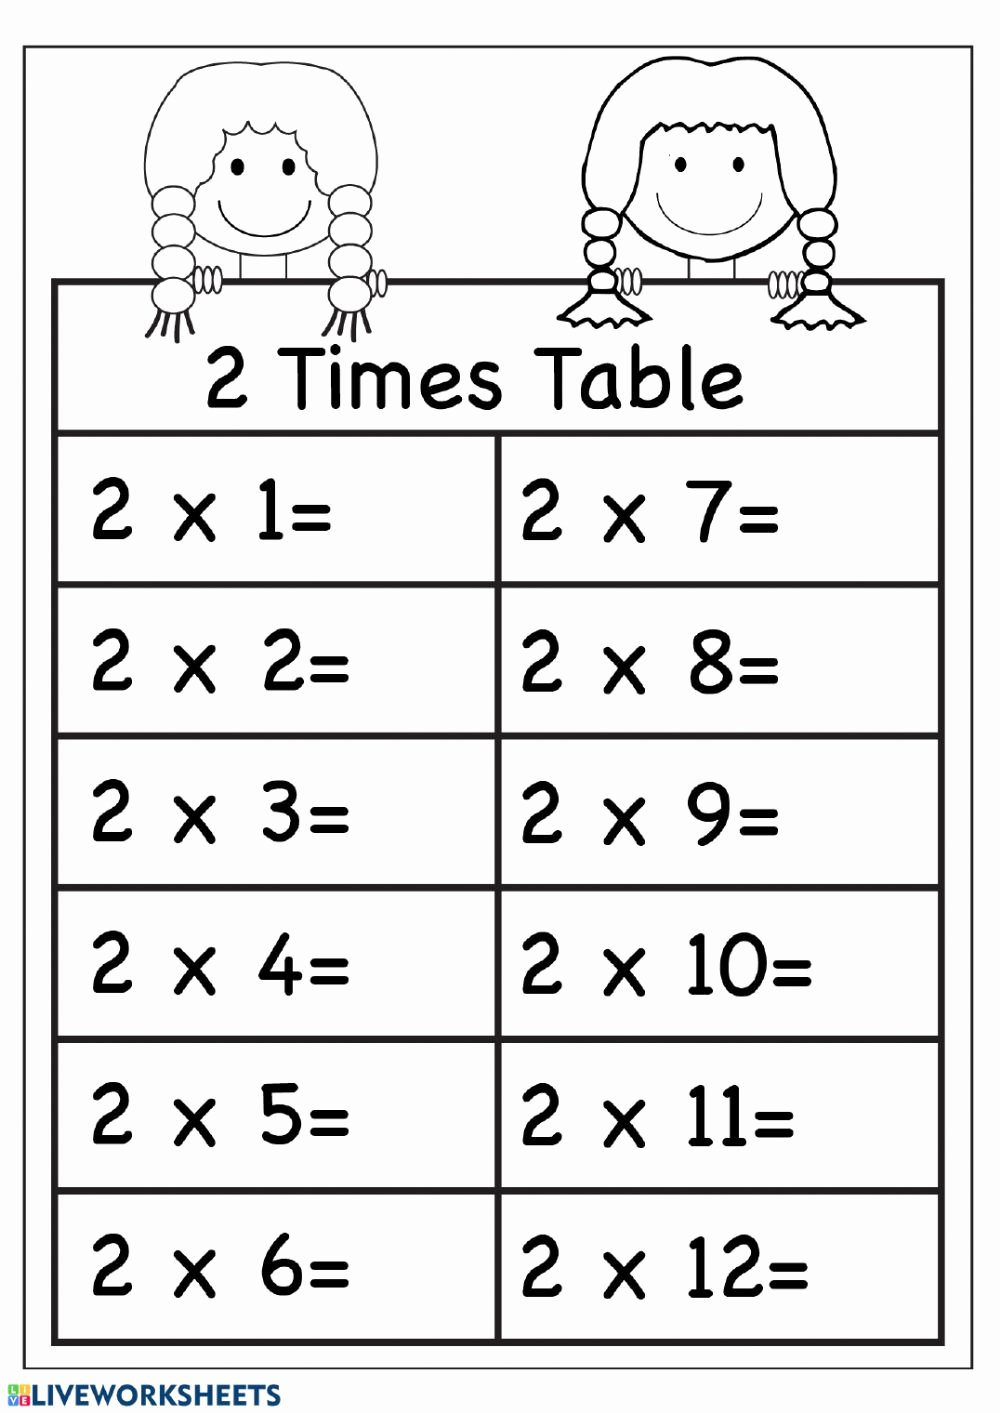 Multiplication Worksheets 2 Times Tables top Multiplication Practice Interactive Worksheet by Worksheets